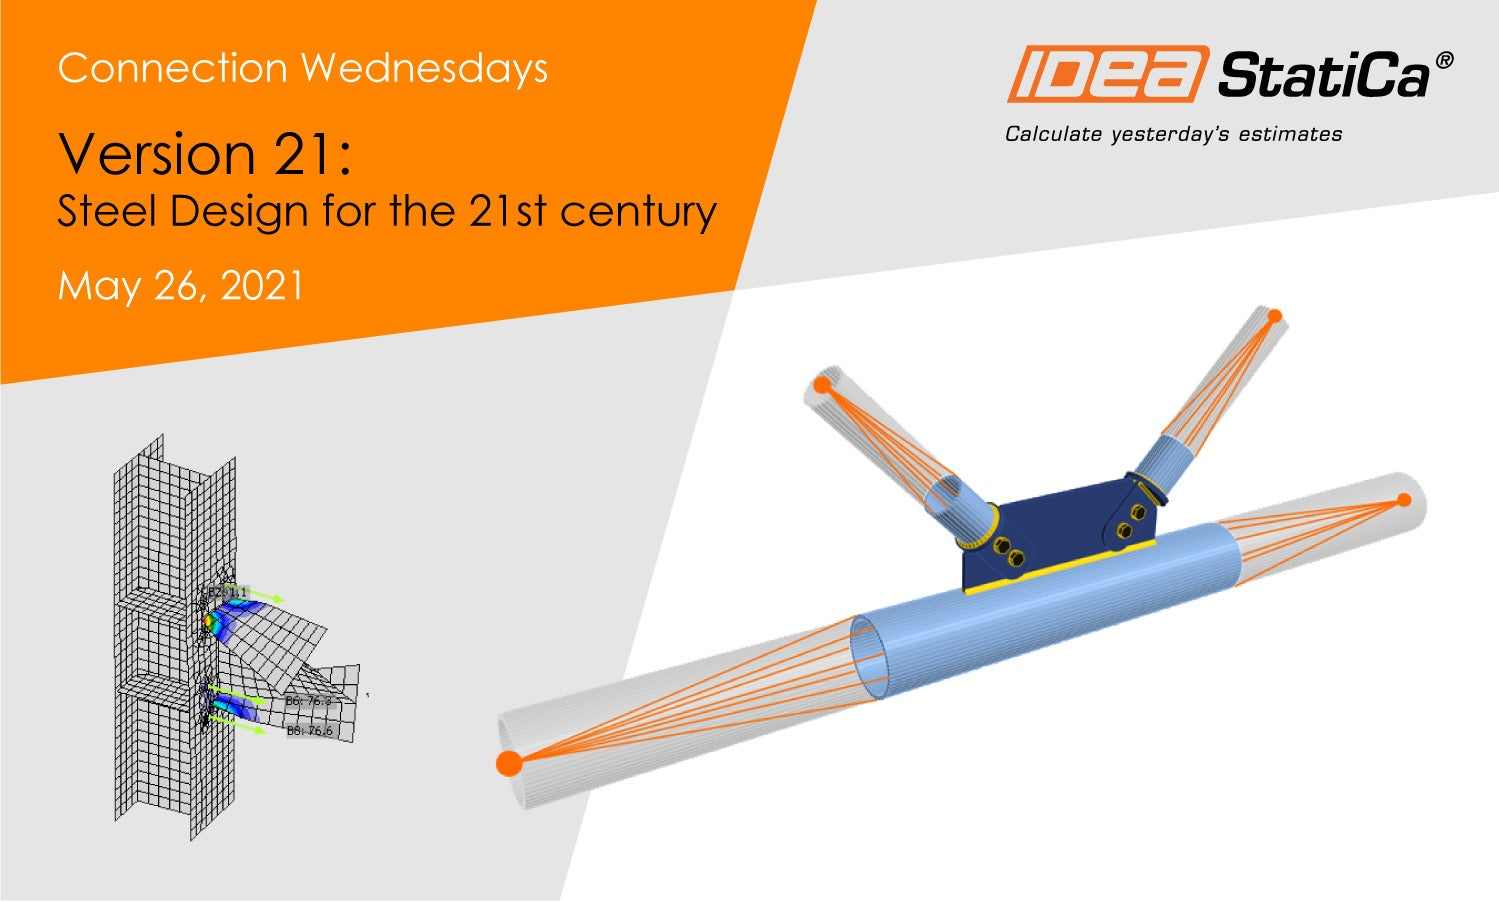 Connection Wednesdays - Version 21: Steel design for the 21st century